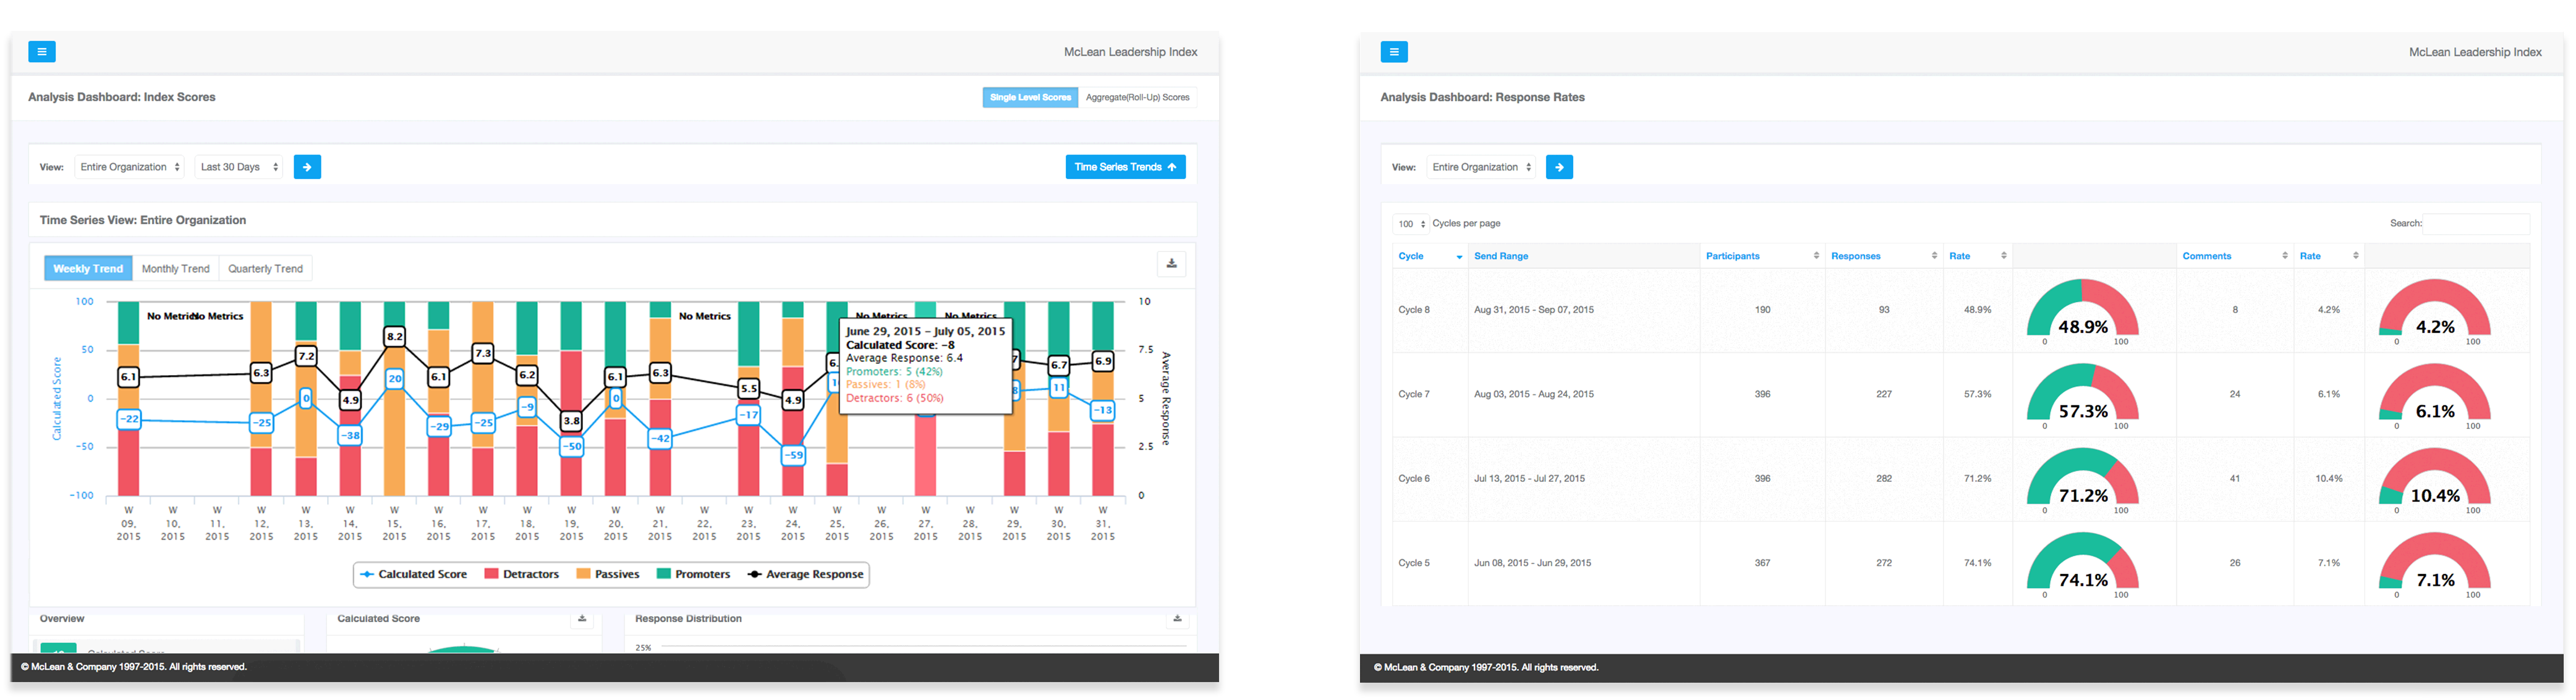 McLean Employee Experience Monitor Example